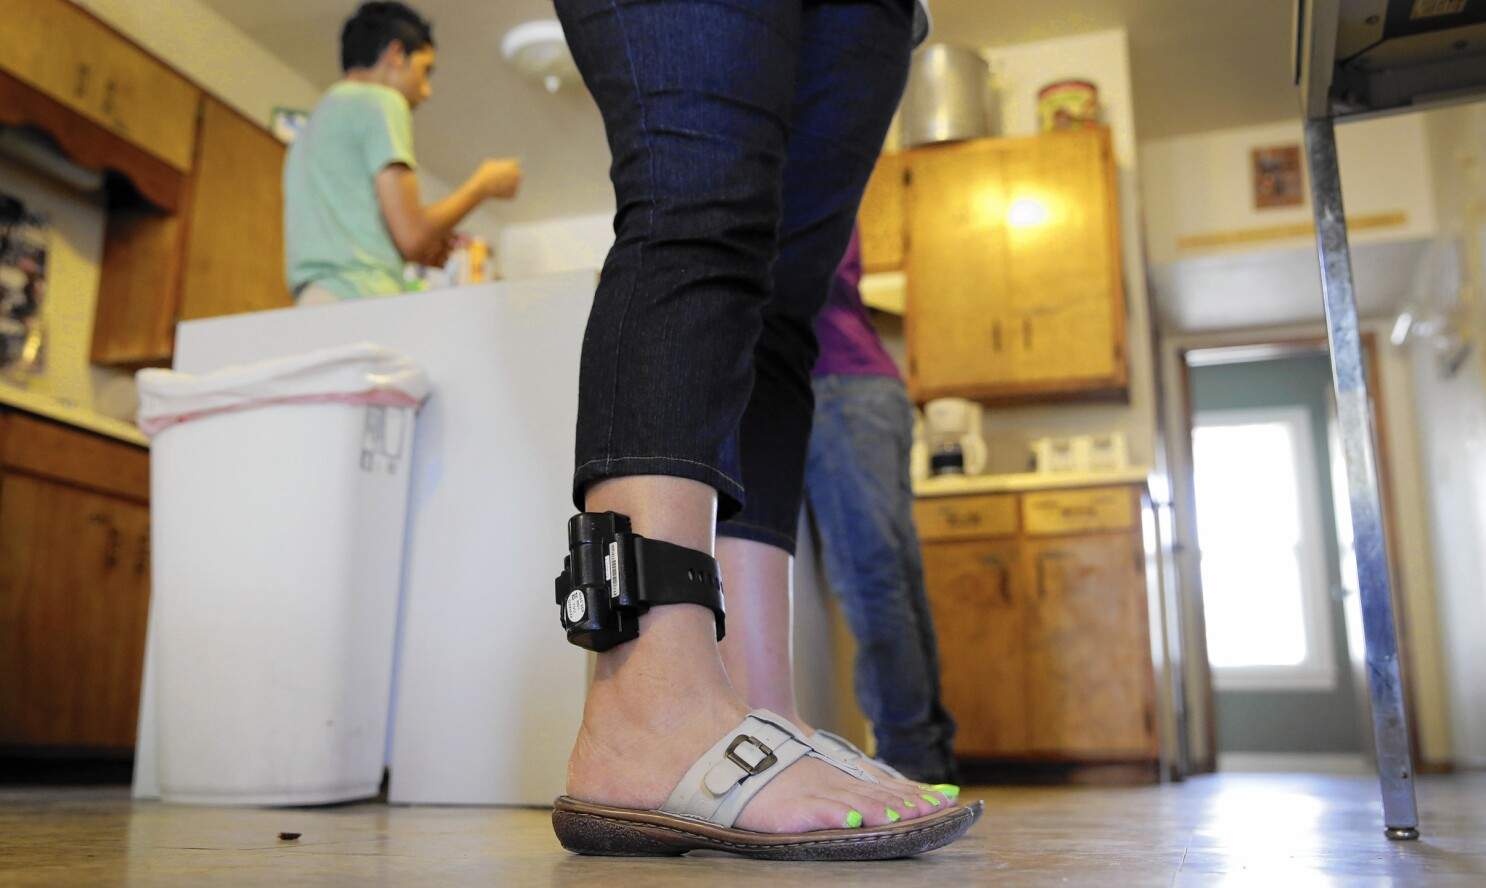 Immigrants object to growing use of ankle monitors after detention